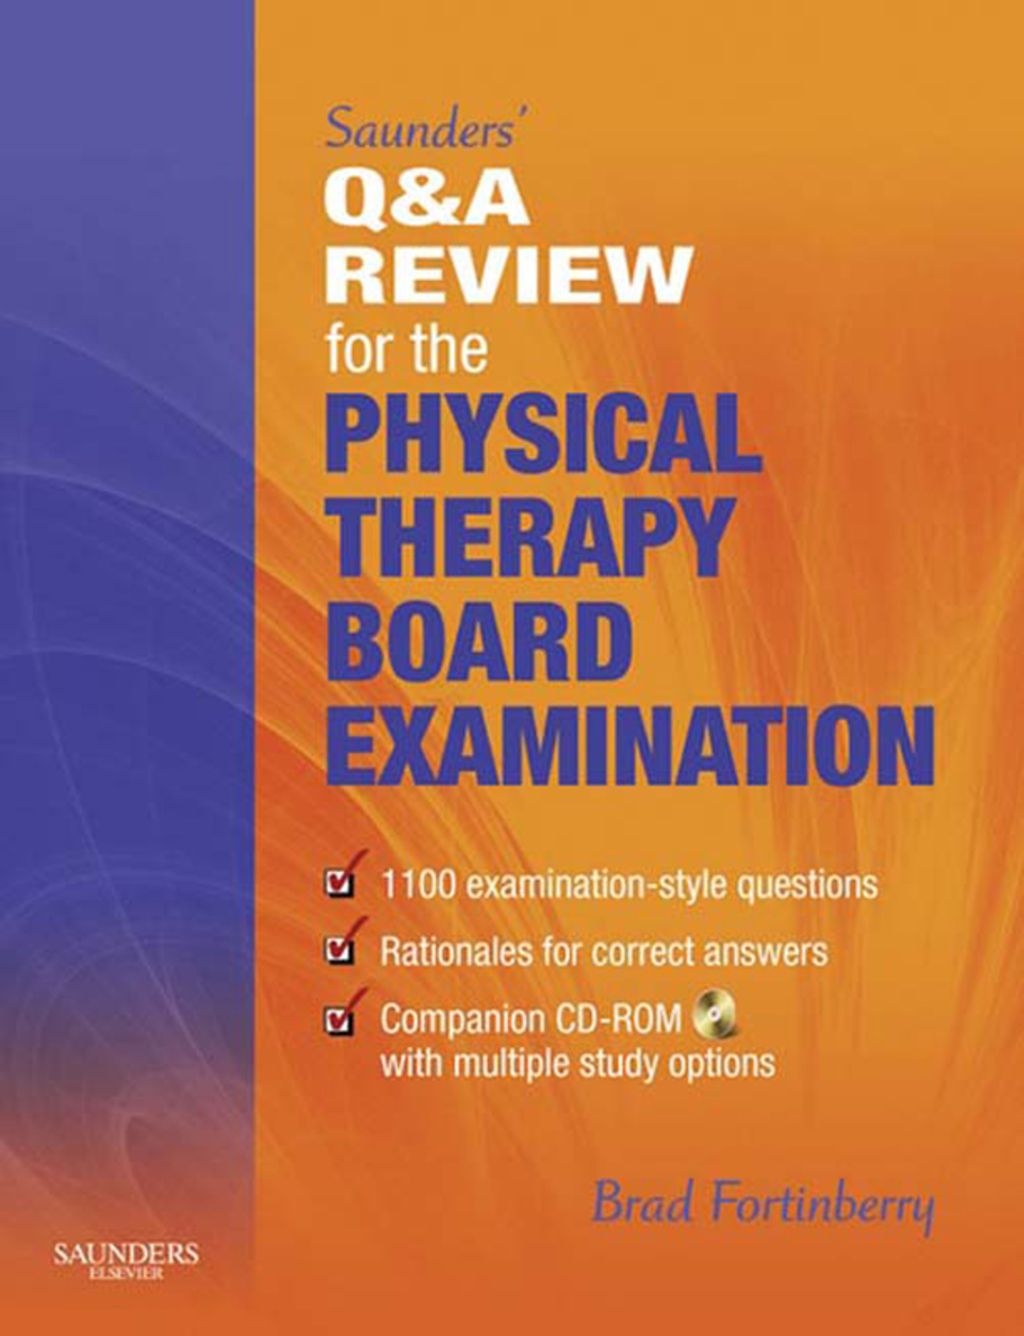 Saunders' Q & A Review for the Physical Therapy Board